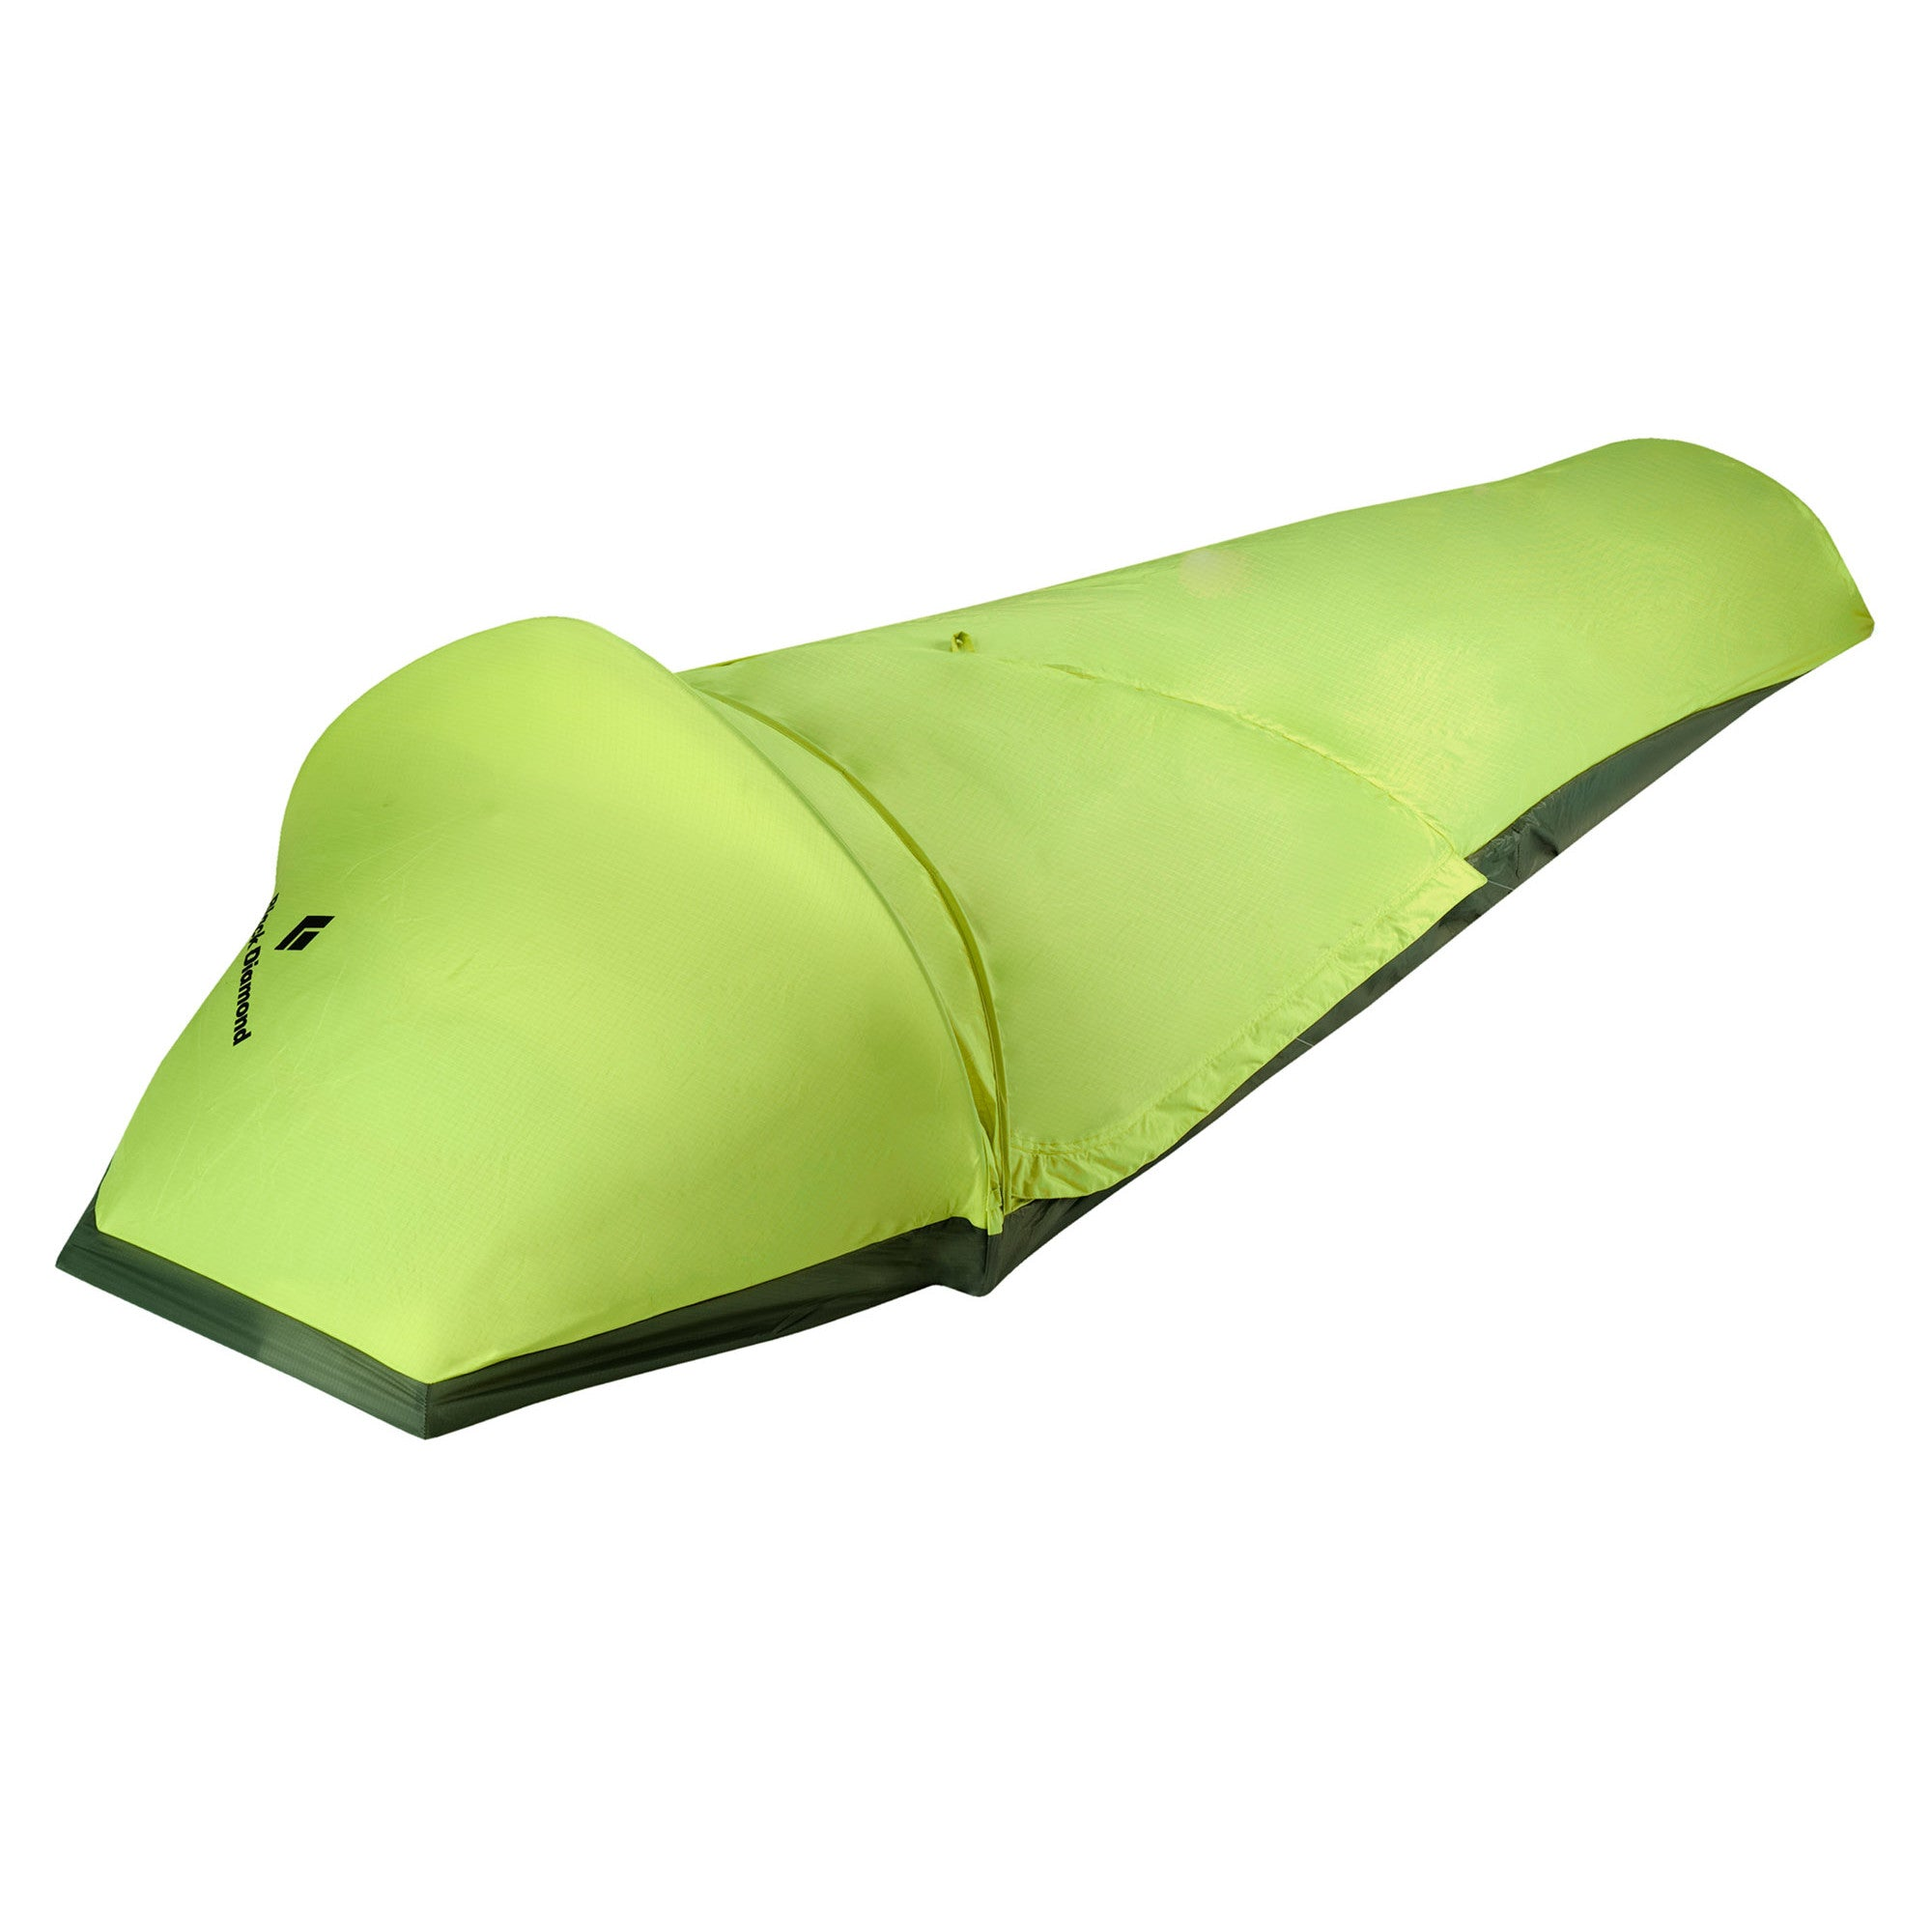 Black Diamond Spotlight Bivy, front/side view showing bivy erect